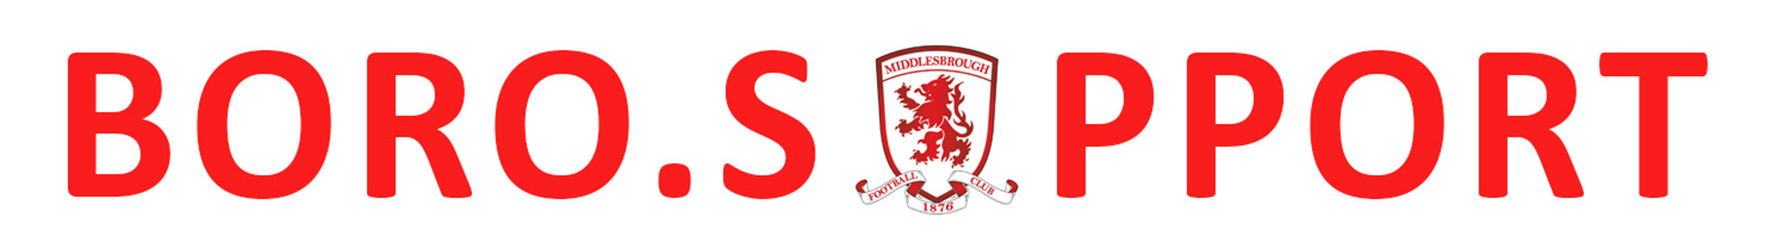 BORO-SUPPORT- smaller